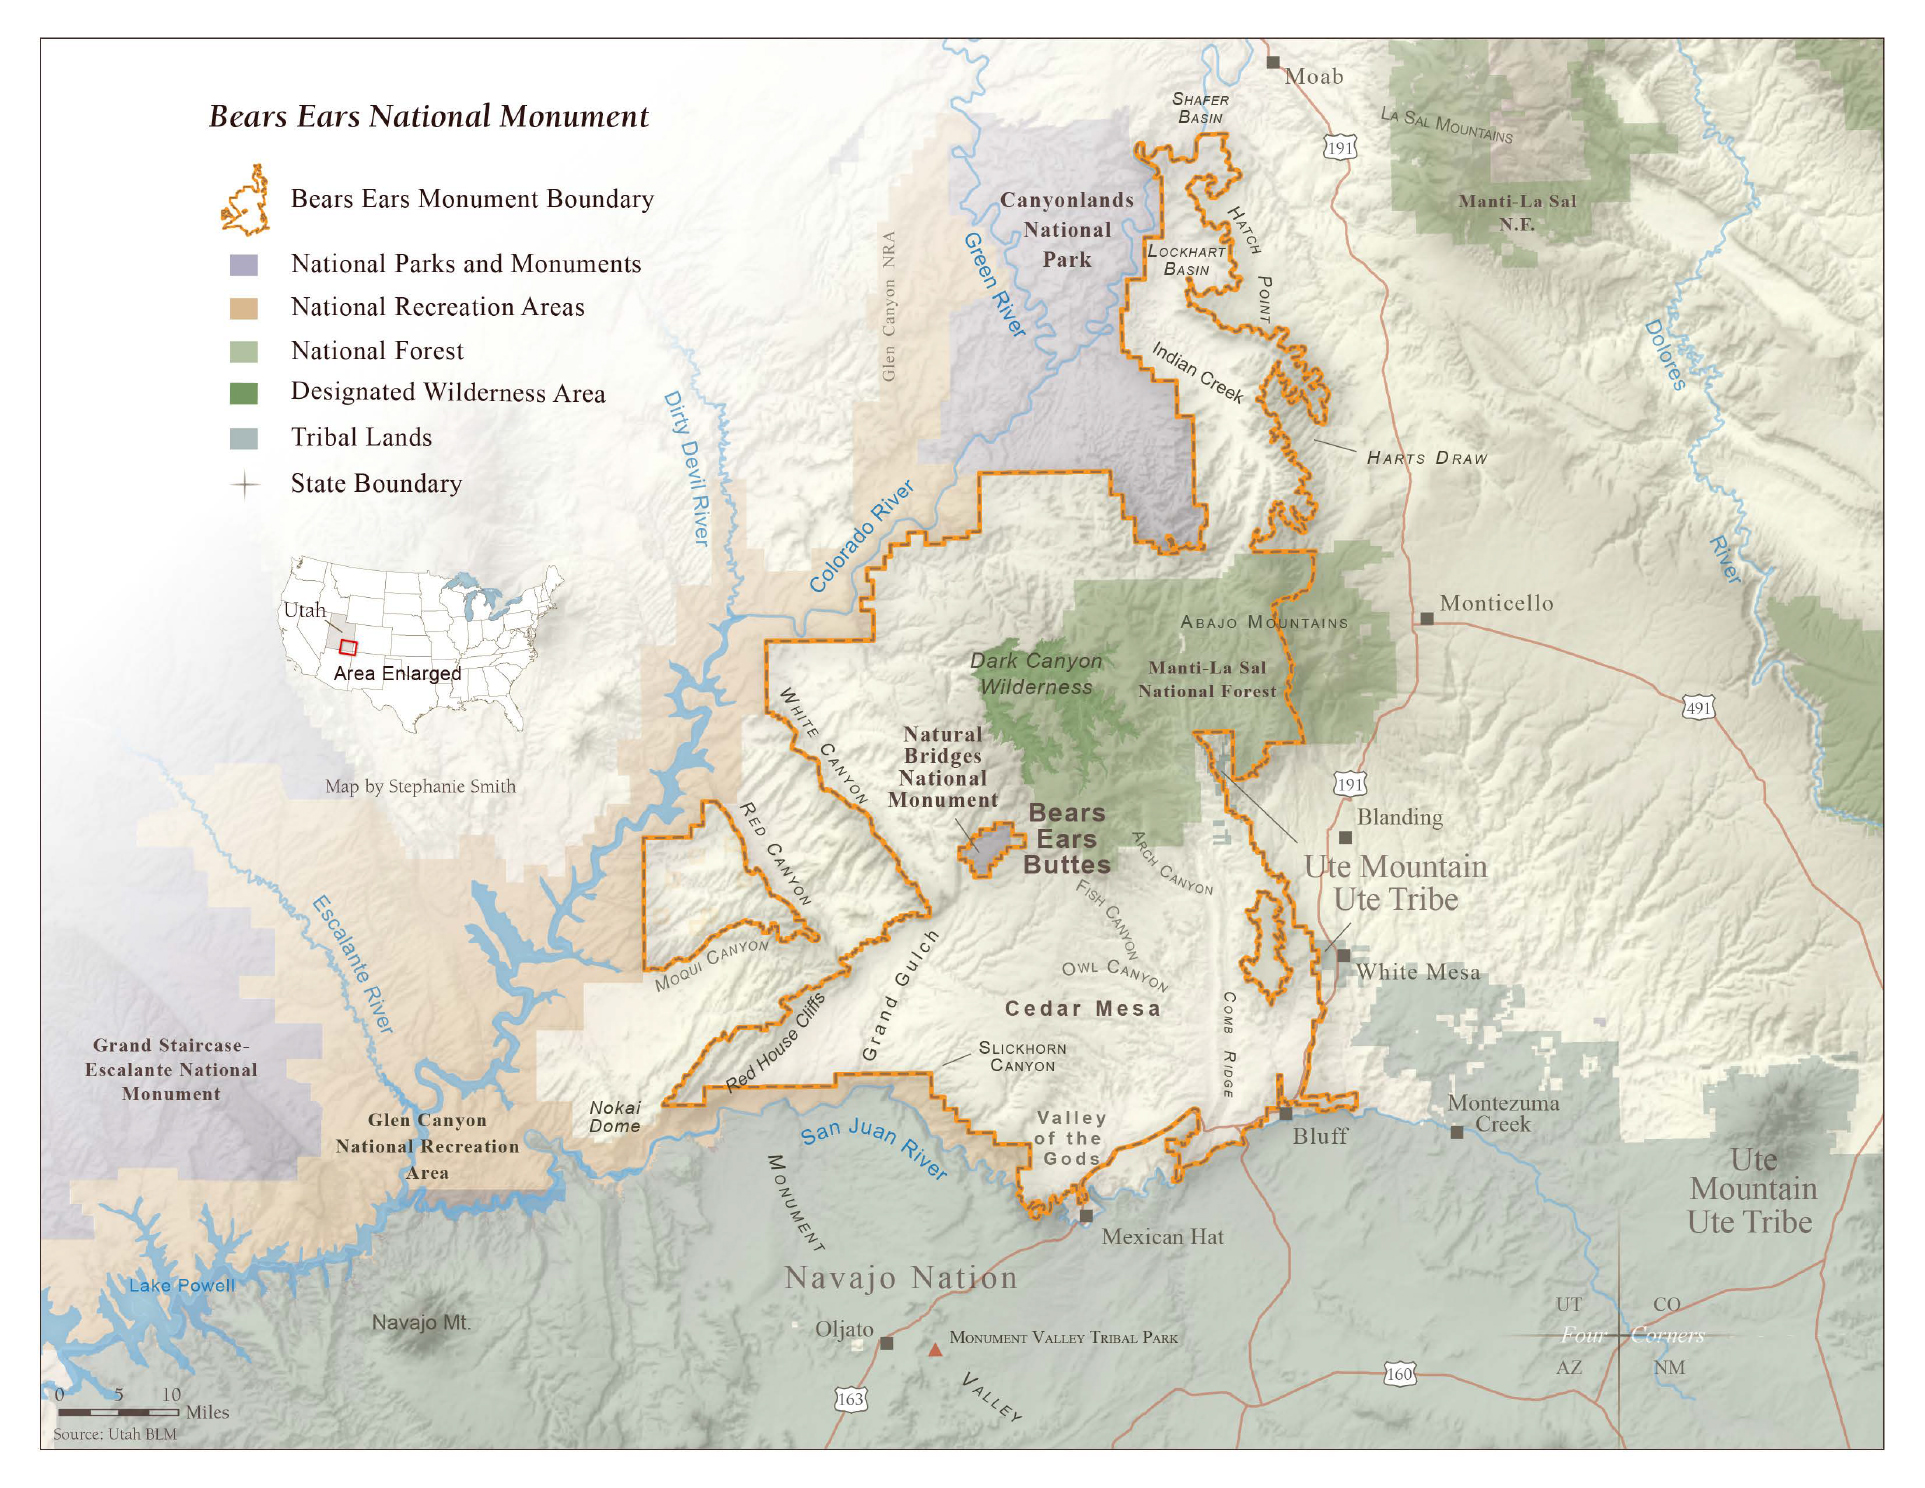 Map courtesy of Grand Canyon Trust.  Learn more at:  http://www.grandcanyontrust.org/bears-ears-cultural-landscape